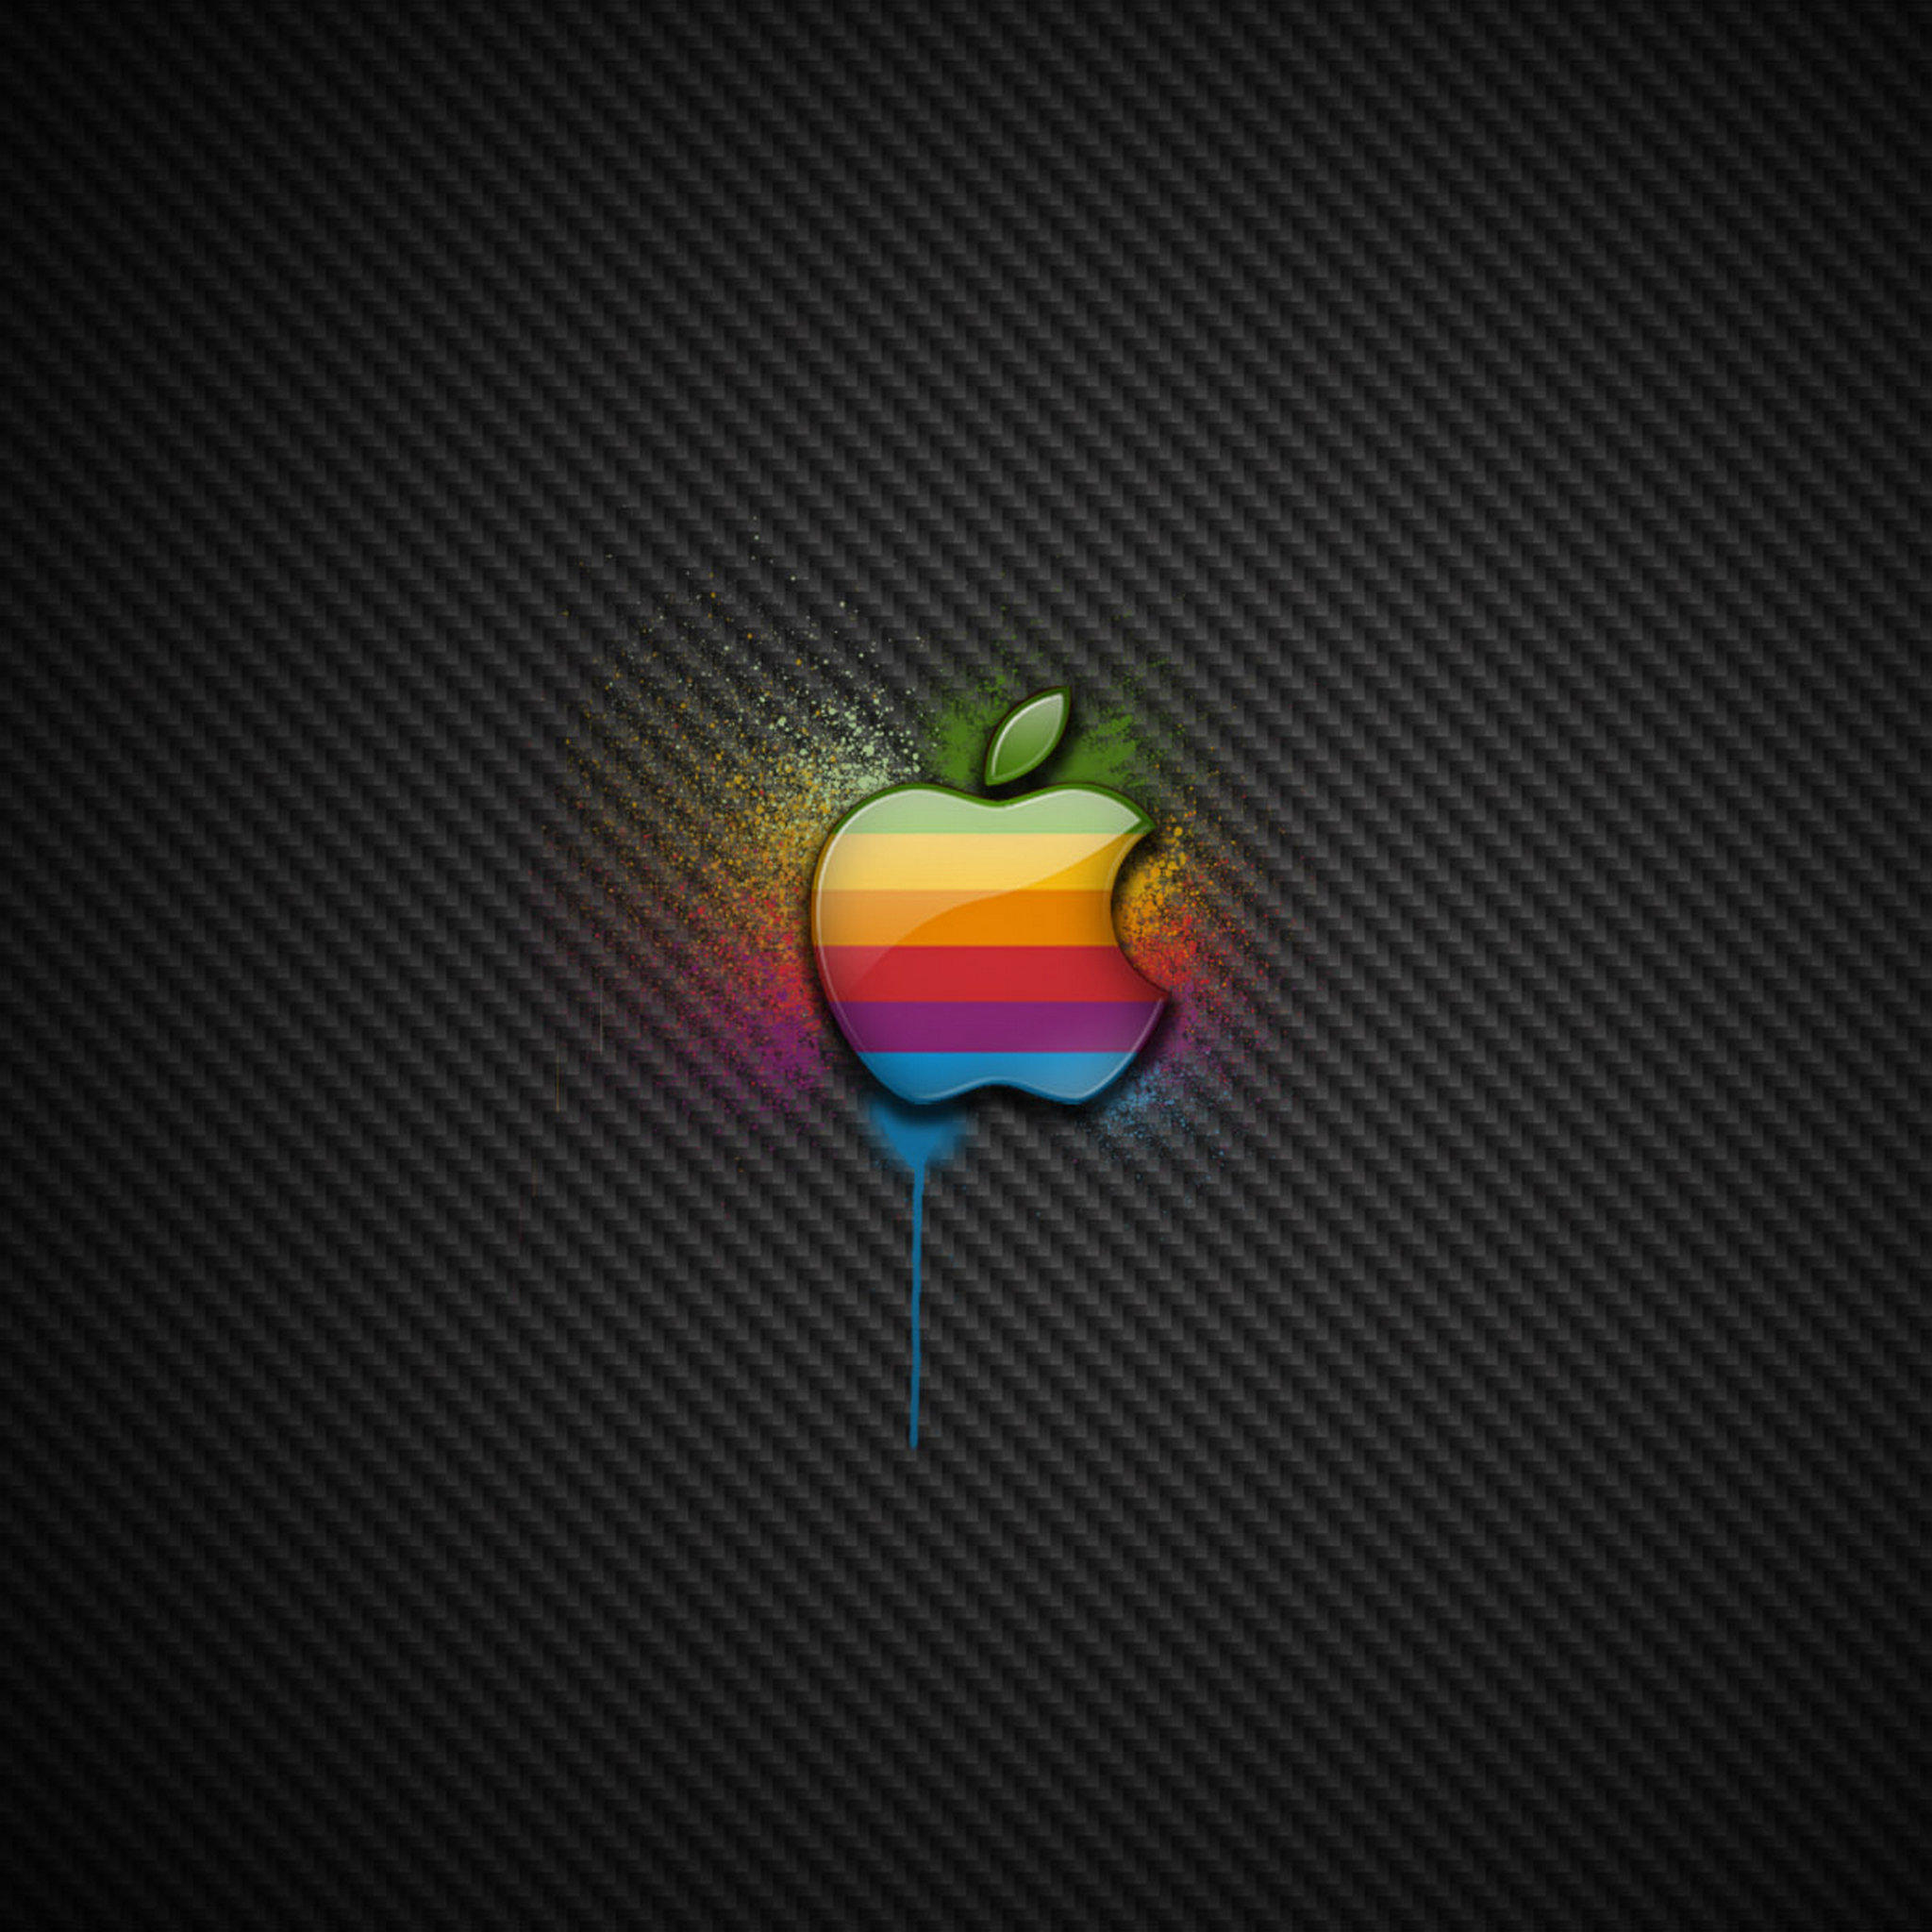 iPad Wallpapers Apple LOGO 038   Apple New iPad iPad 3 iPad 4 2048x2048